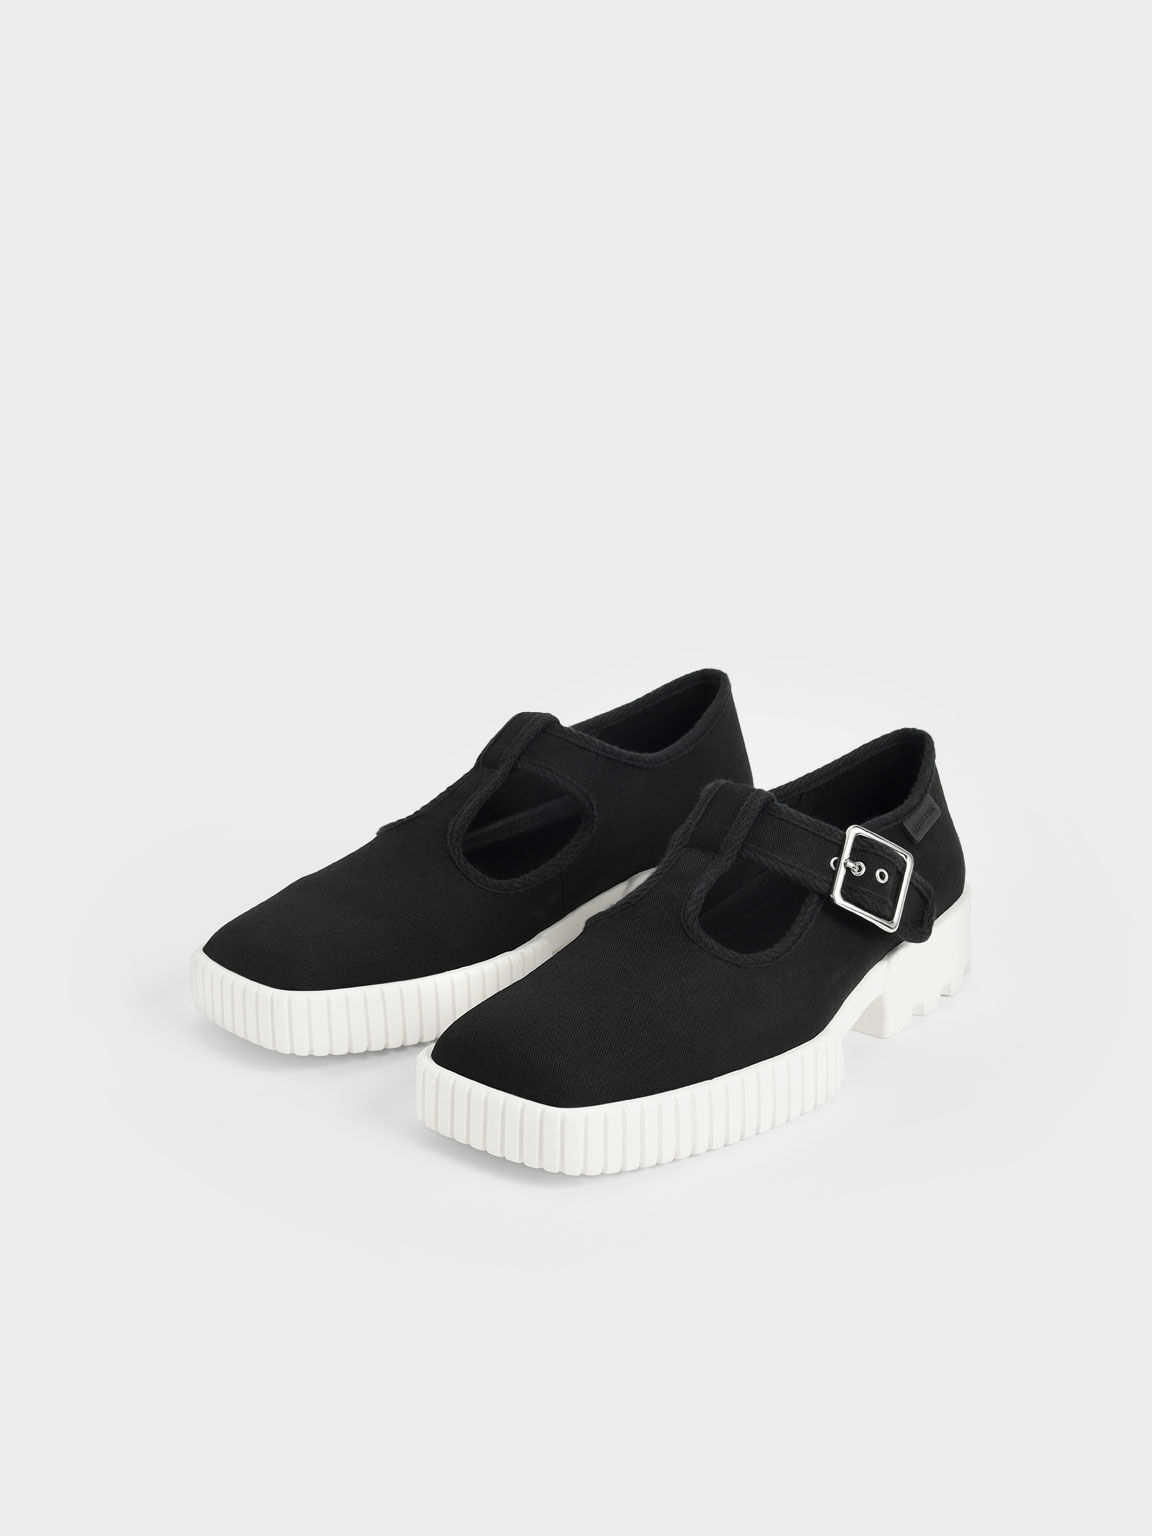 Recycled Cotton Buckle Sneakers, Black, hi-res